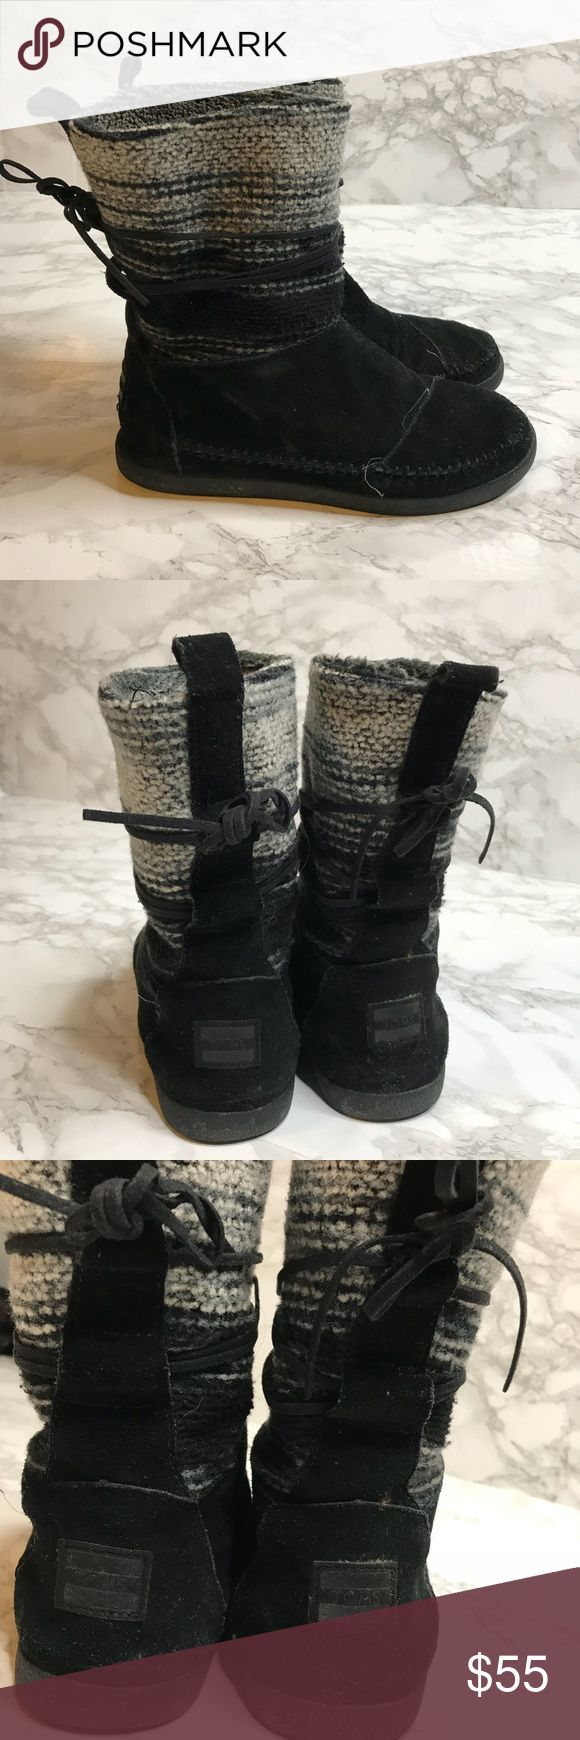 Toms Nepal Black Wool Stripe Womens Boots Leather Winter boots with faux fur lining! Adorable boots in excellent used condition! One for one. Size 7 Toms Shoes Winter & Rain Boots